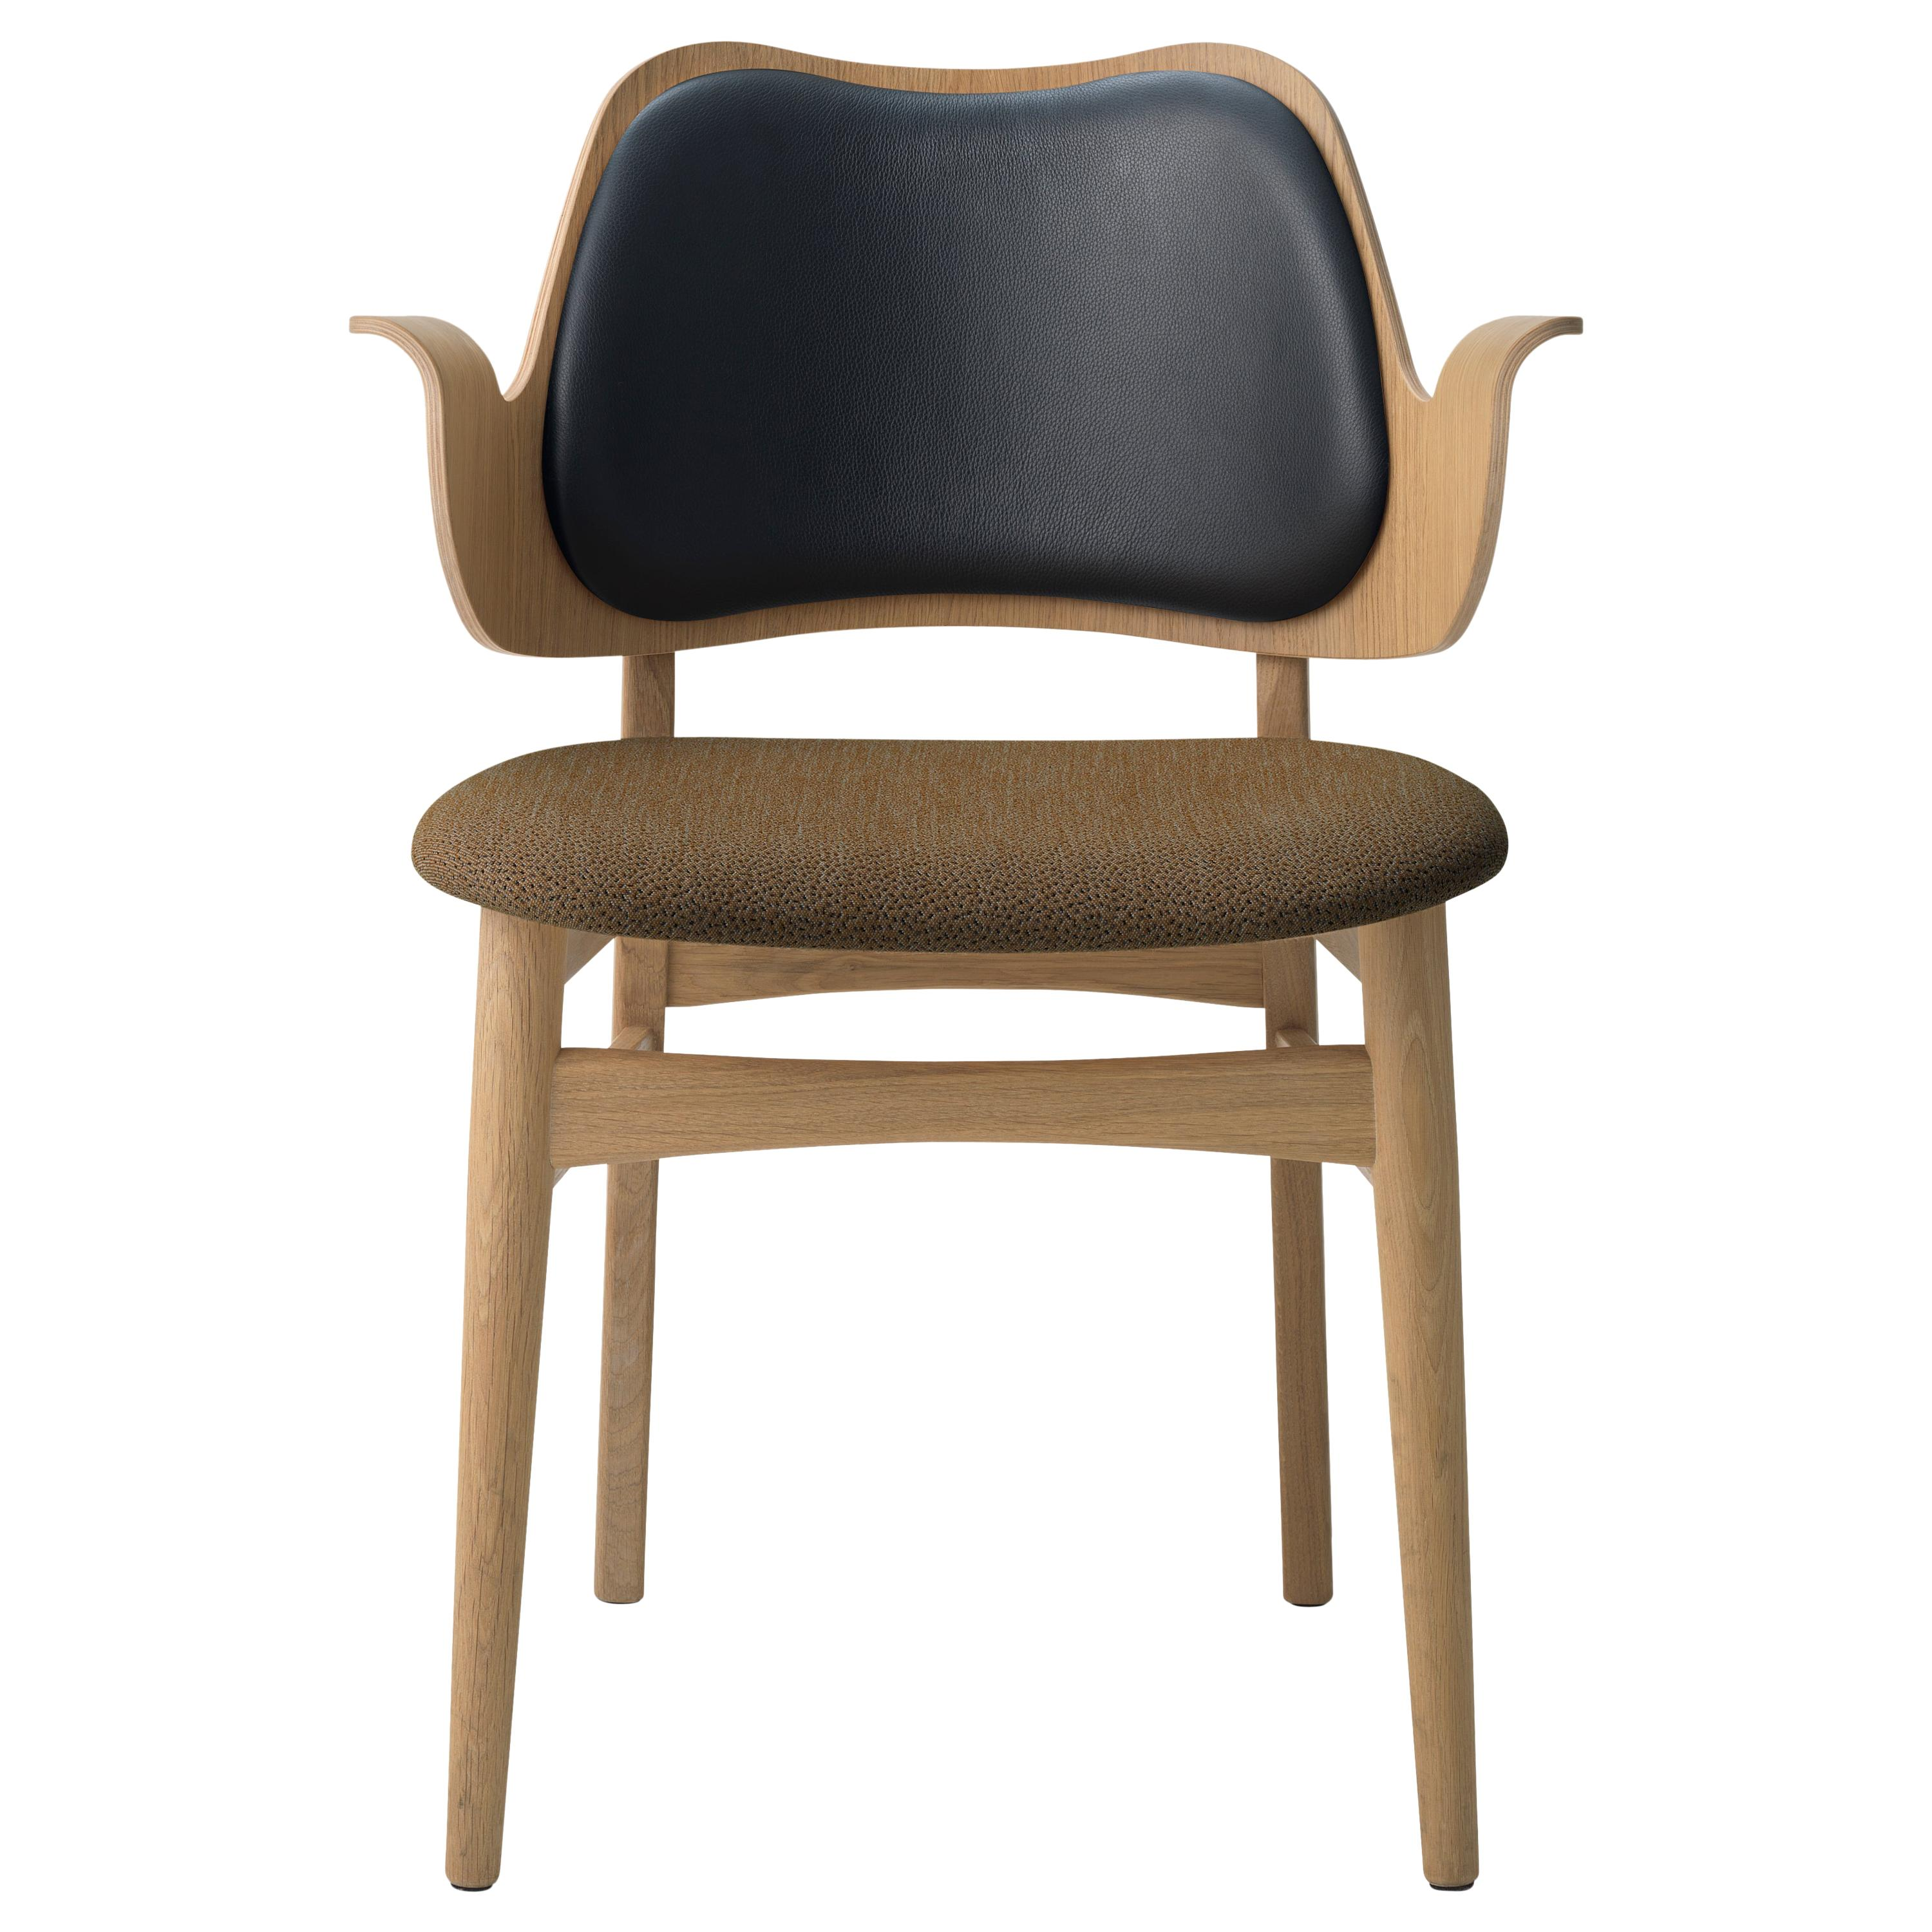 Gesture Two-Tone Fully Upholstered Chair in Oak, by Hans Olsen from Warm Nordic